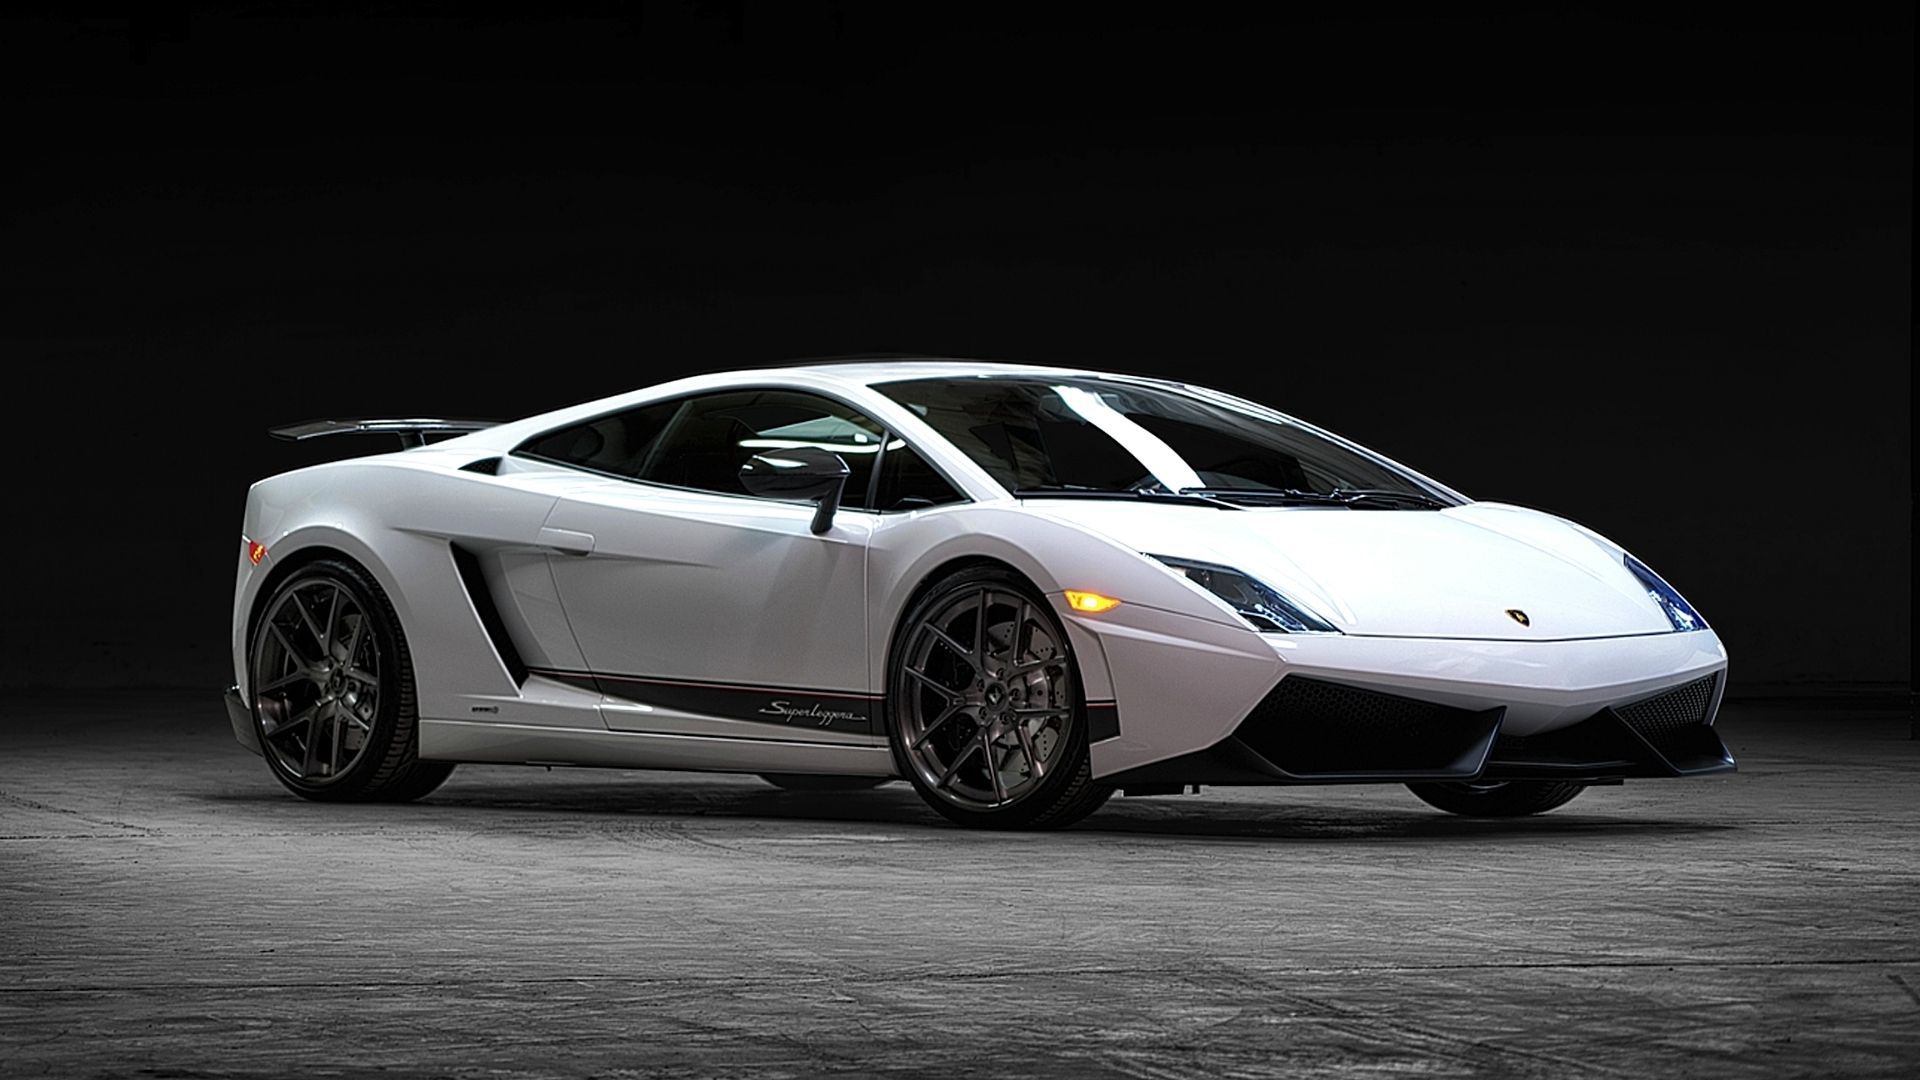 Lamborghini Gallardo Wallpapers HD #1409 Wallpaper